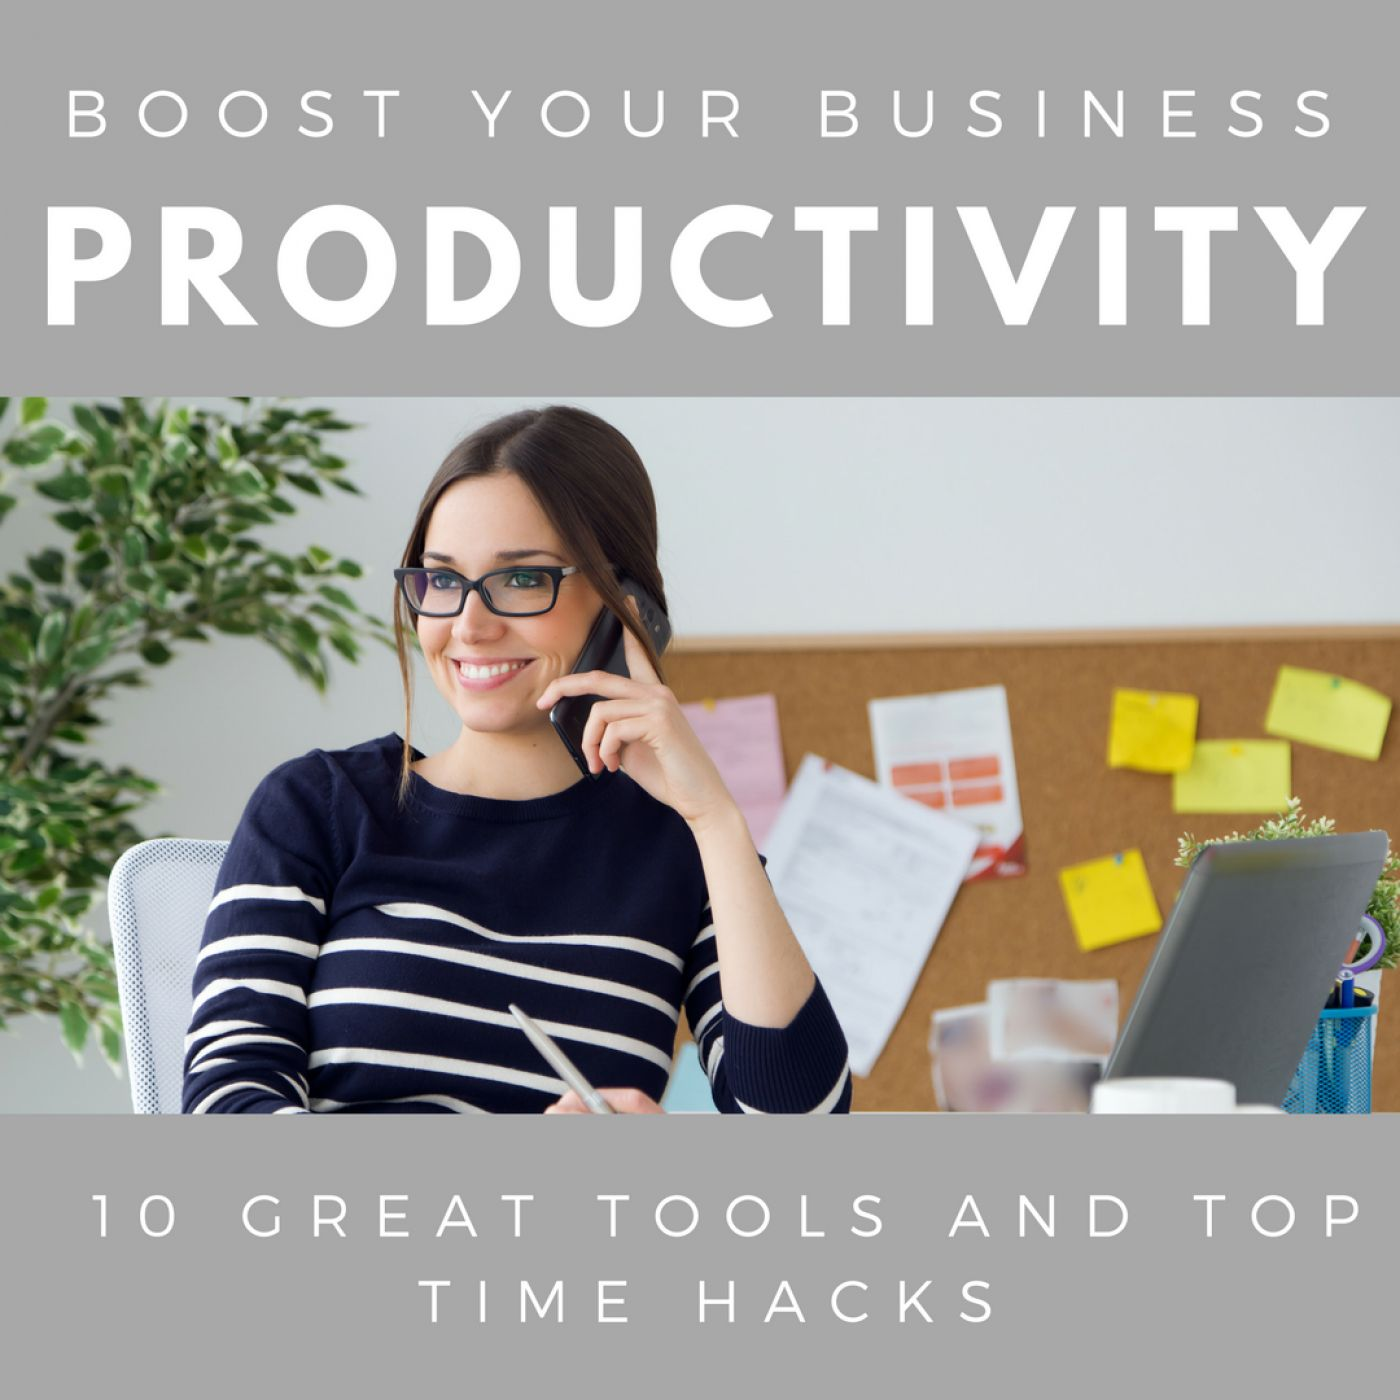 10 Productivity-Boosting Tools & Time Hacks for Entrepreneurs